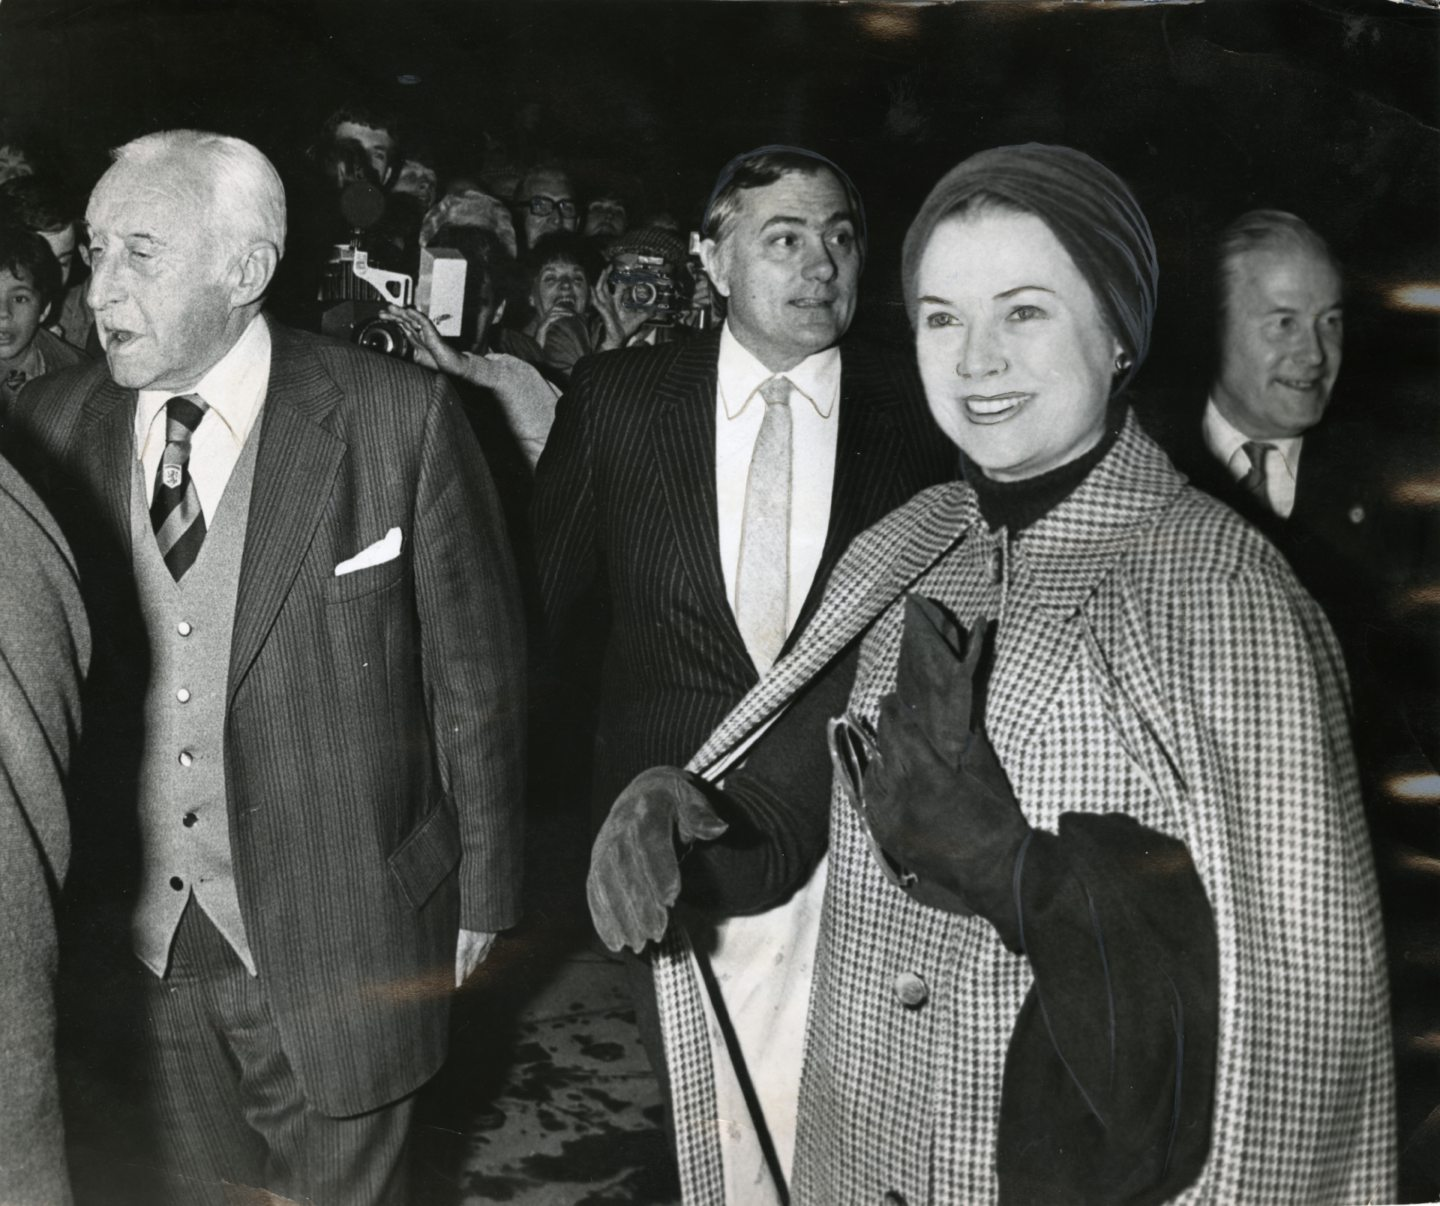 Princess Grace arriving at Tannadice to watch the Uefa Cup match in 1981.